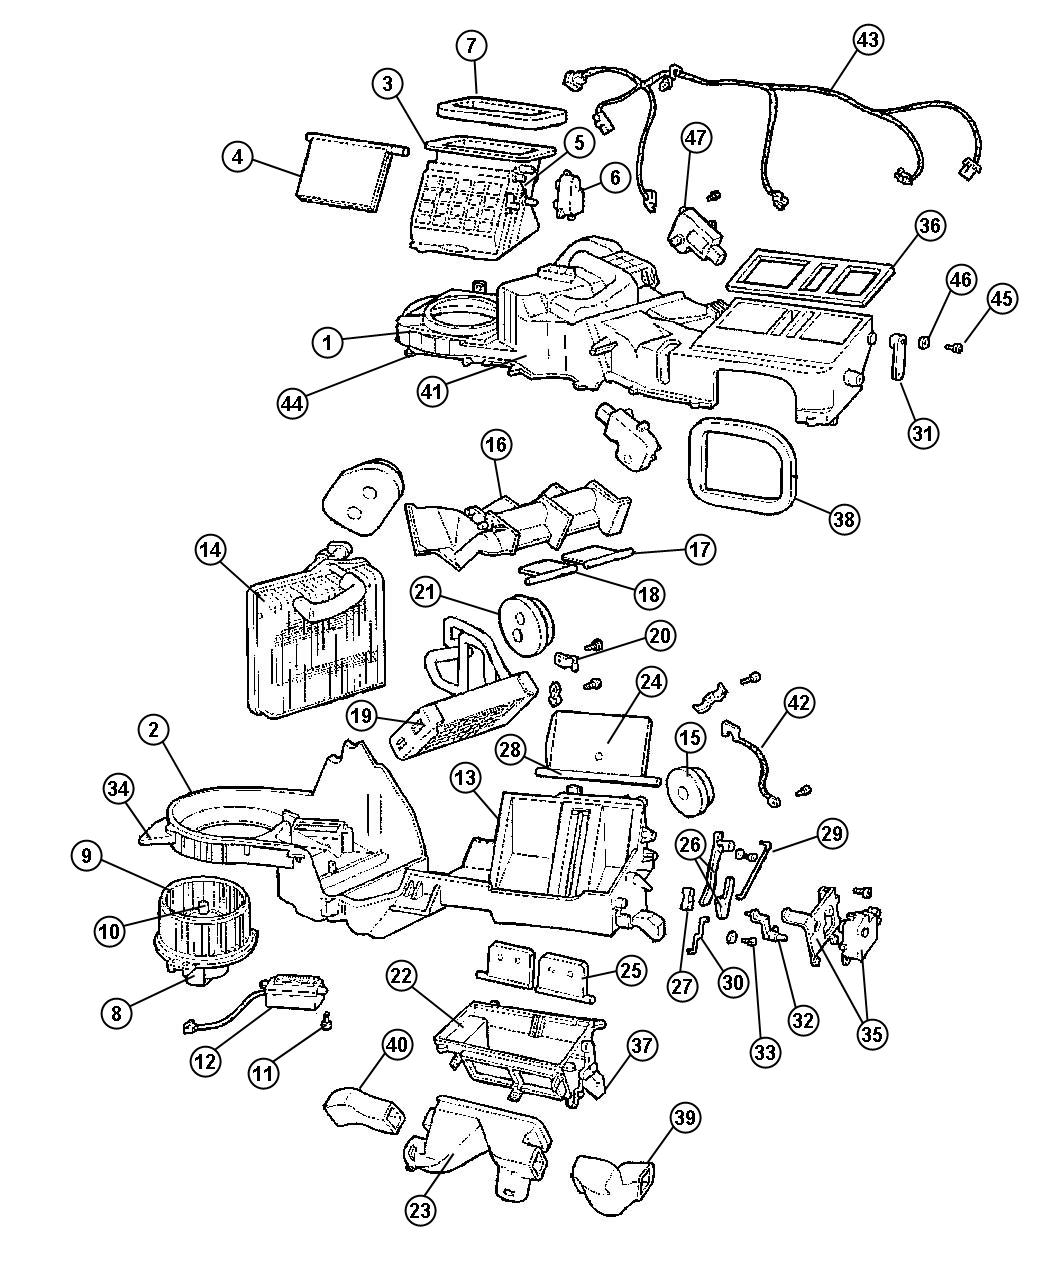 hight resolution of diagram also chrysler ignition wiring diagram on dodge intrepid2002 dodge intrepid 2 7 engine diagram library